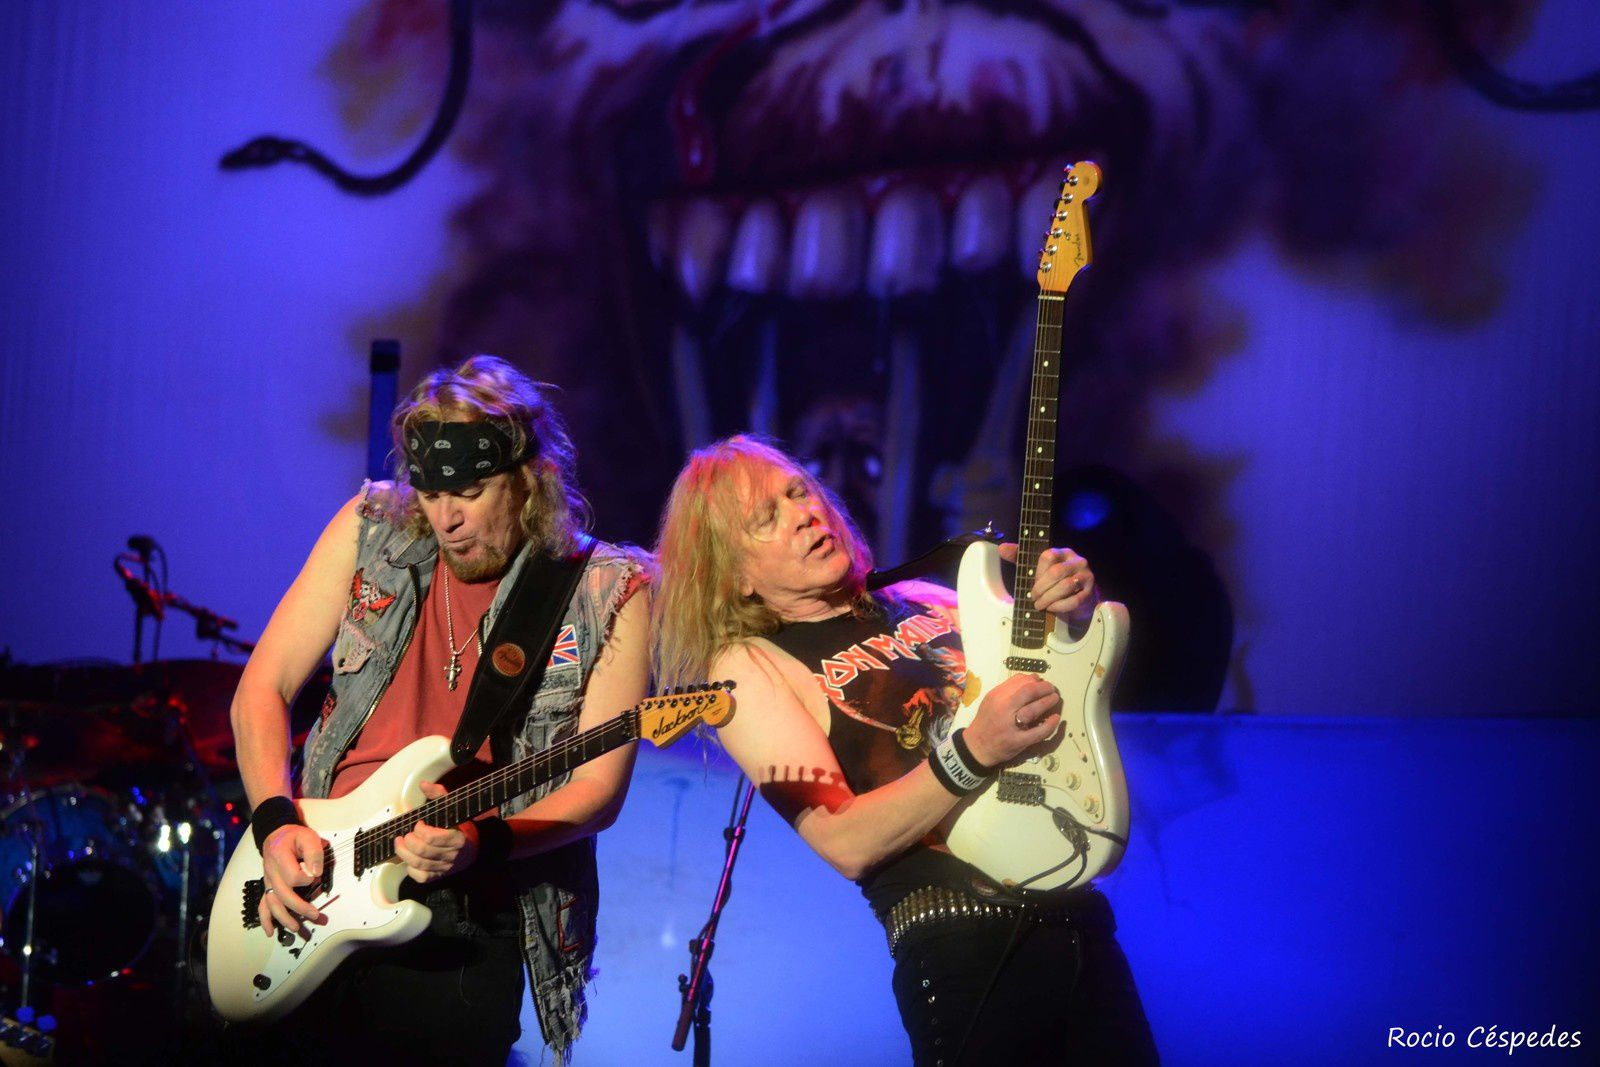 Adrian Smith and Janick Gers, Iron Maiden in Paraguay (2013) - credit: Rocio Cespedes